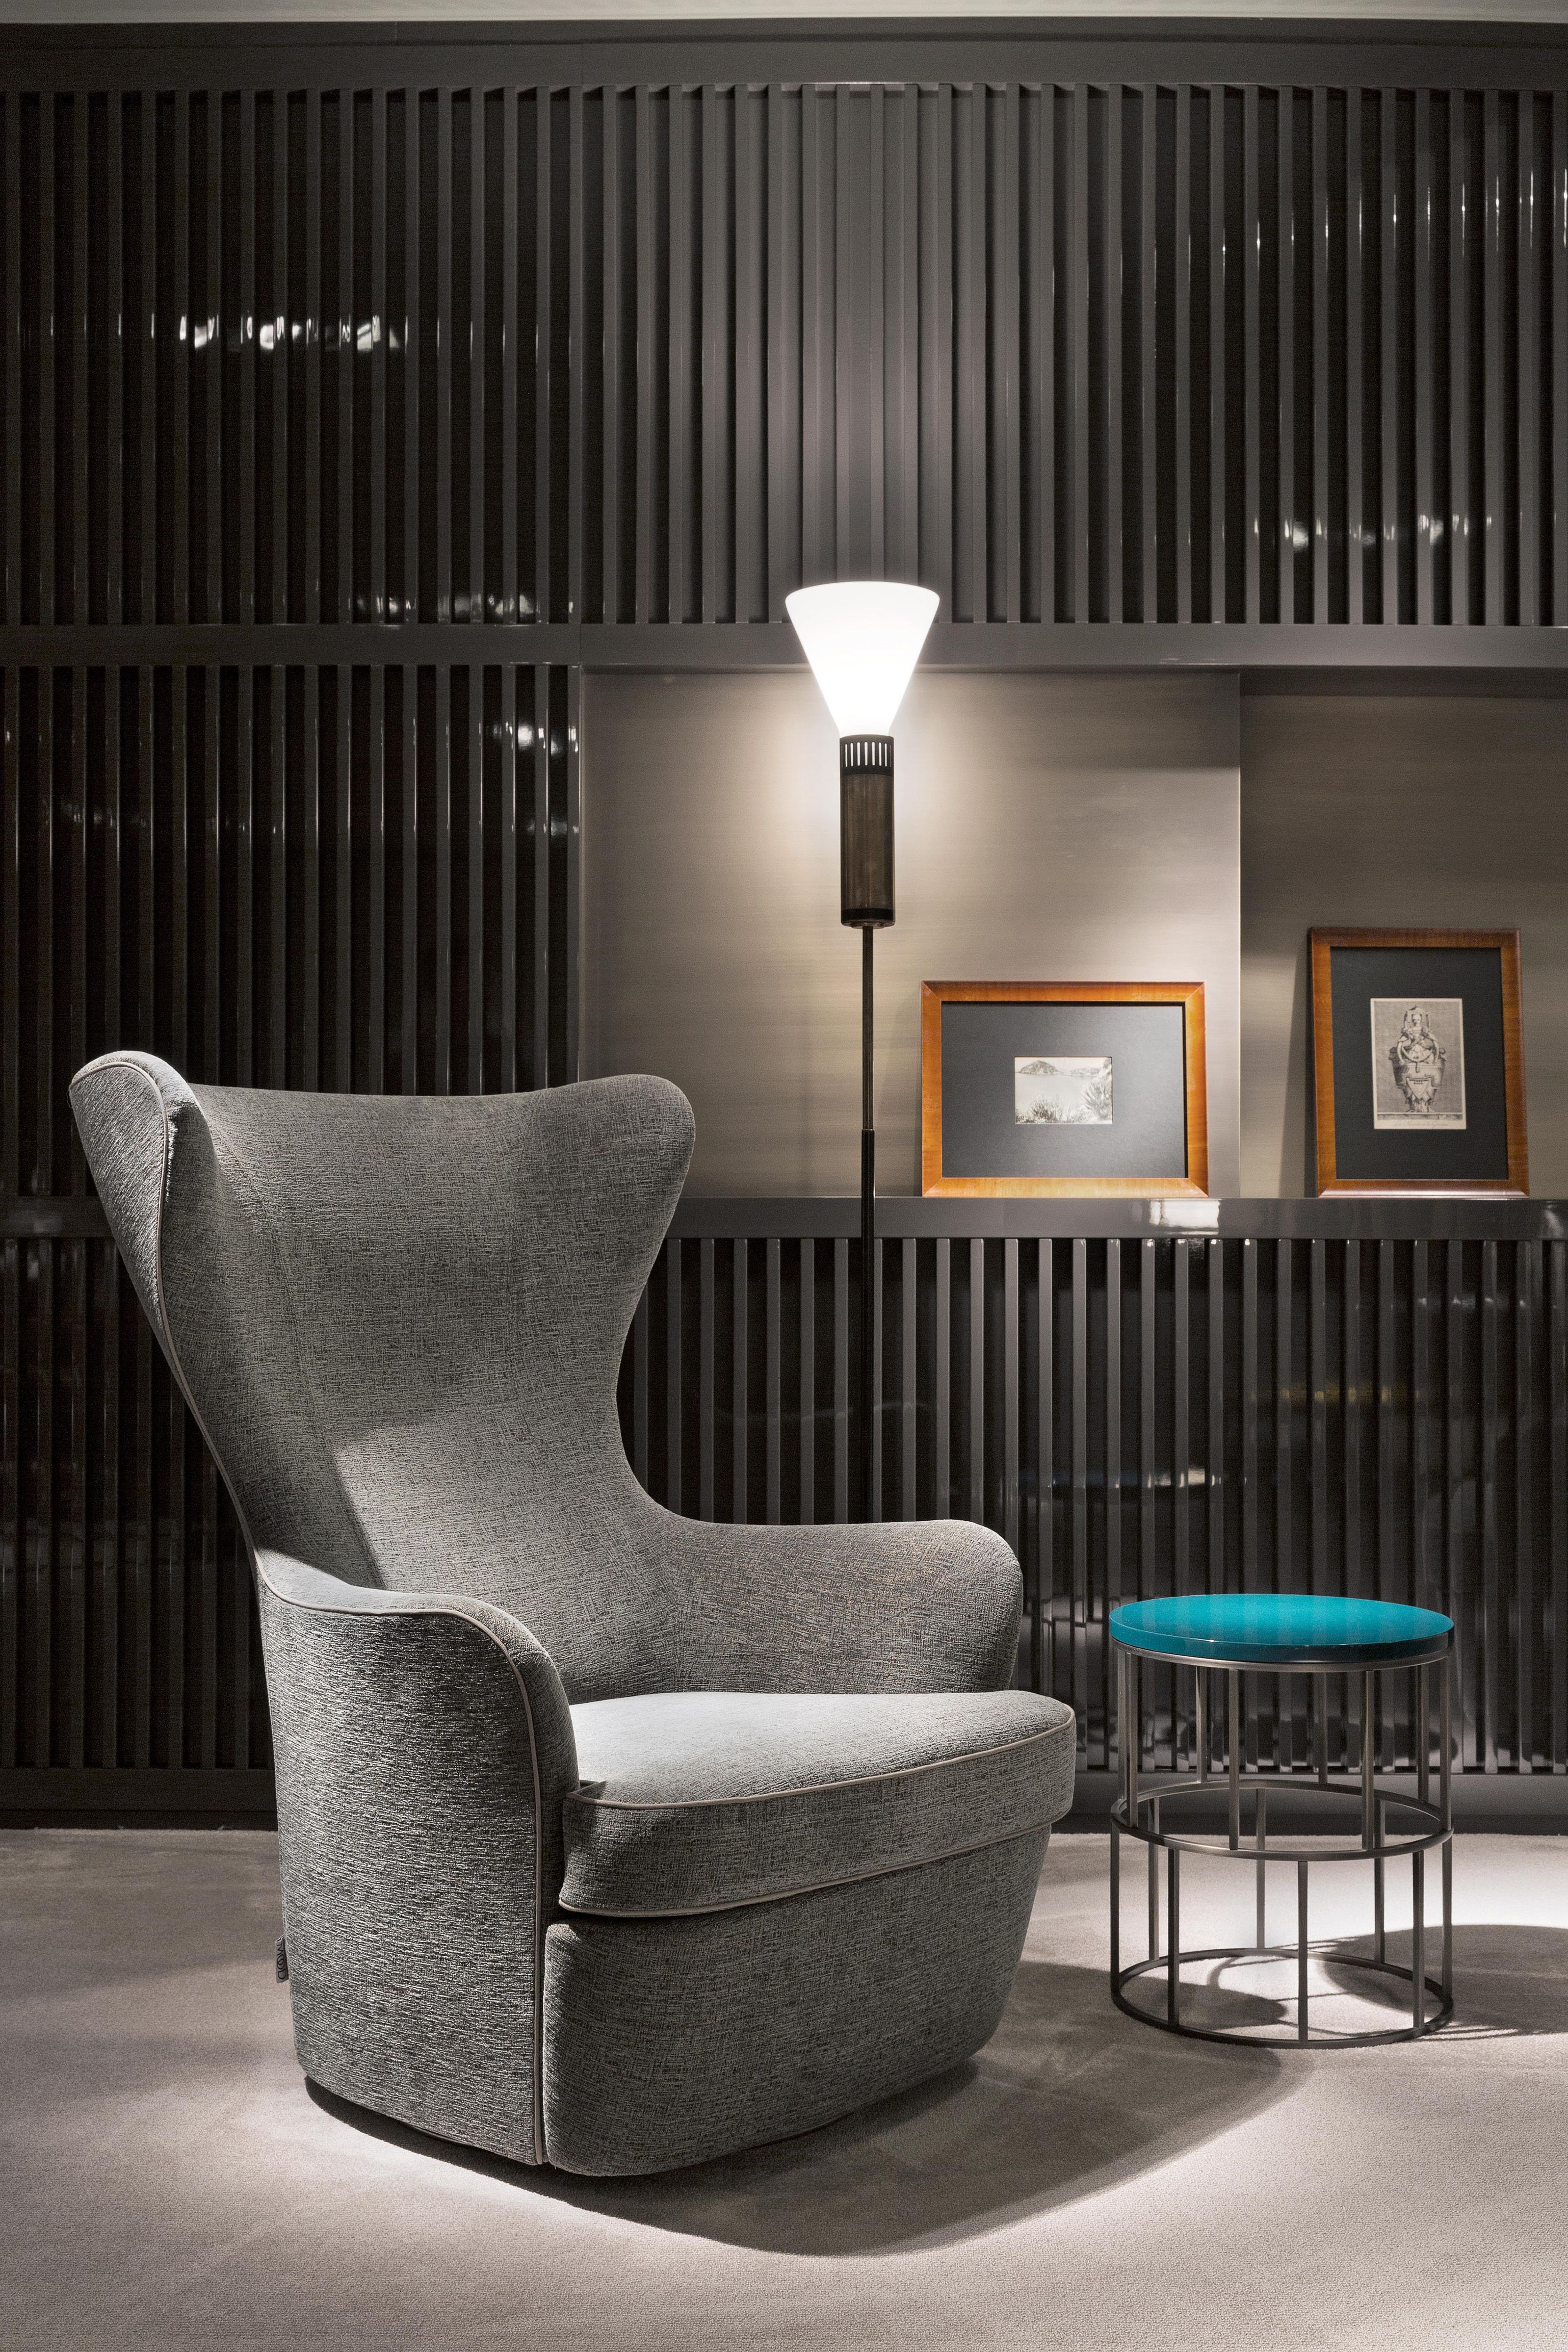 Salone 2014   Exclusive preview FLEXFORM MOOD Collection. The new bergère armchair: ELISABETH, with a large padded shell. Designed by Roberto Lazzeroni. Find out more on http://bit.ly/1hA0jvA